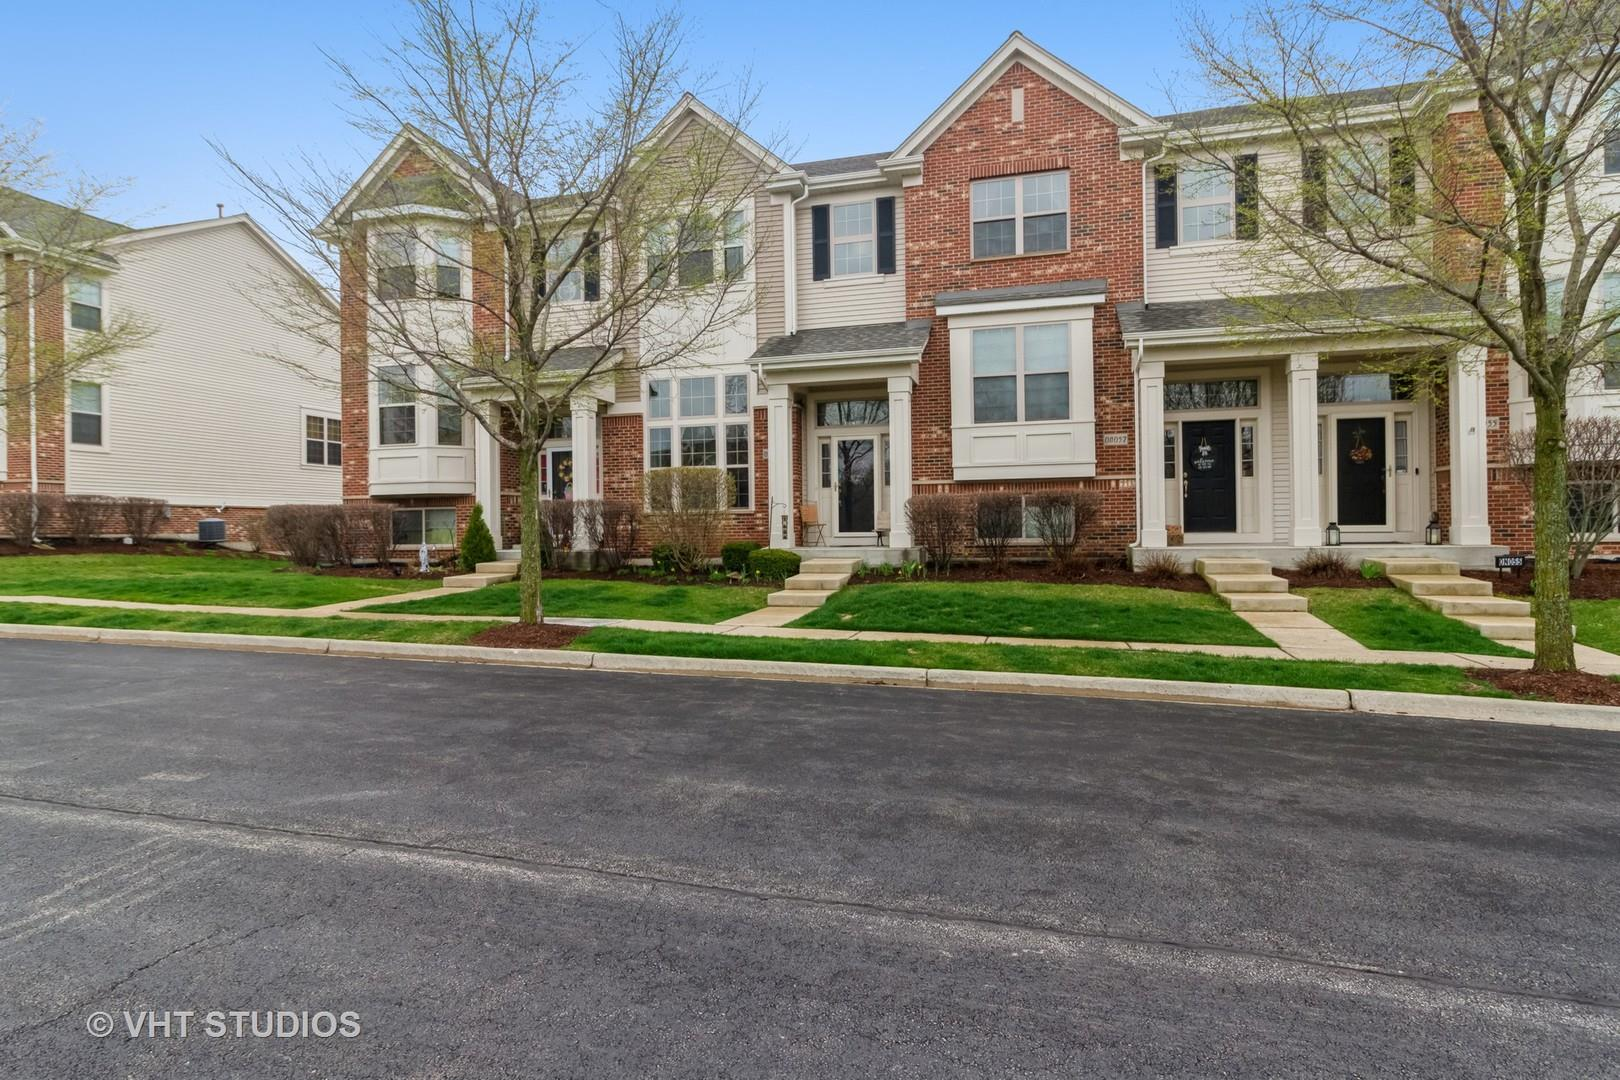 0N059 Forsythe Court, Winfield, IL 60190 - #: 11046133